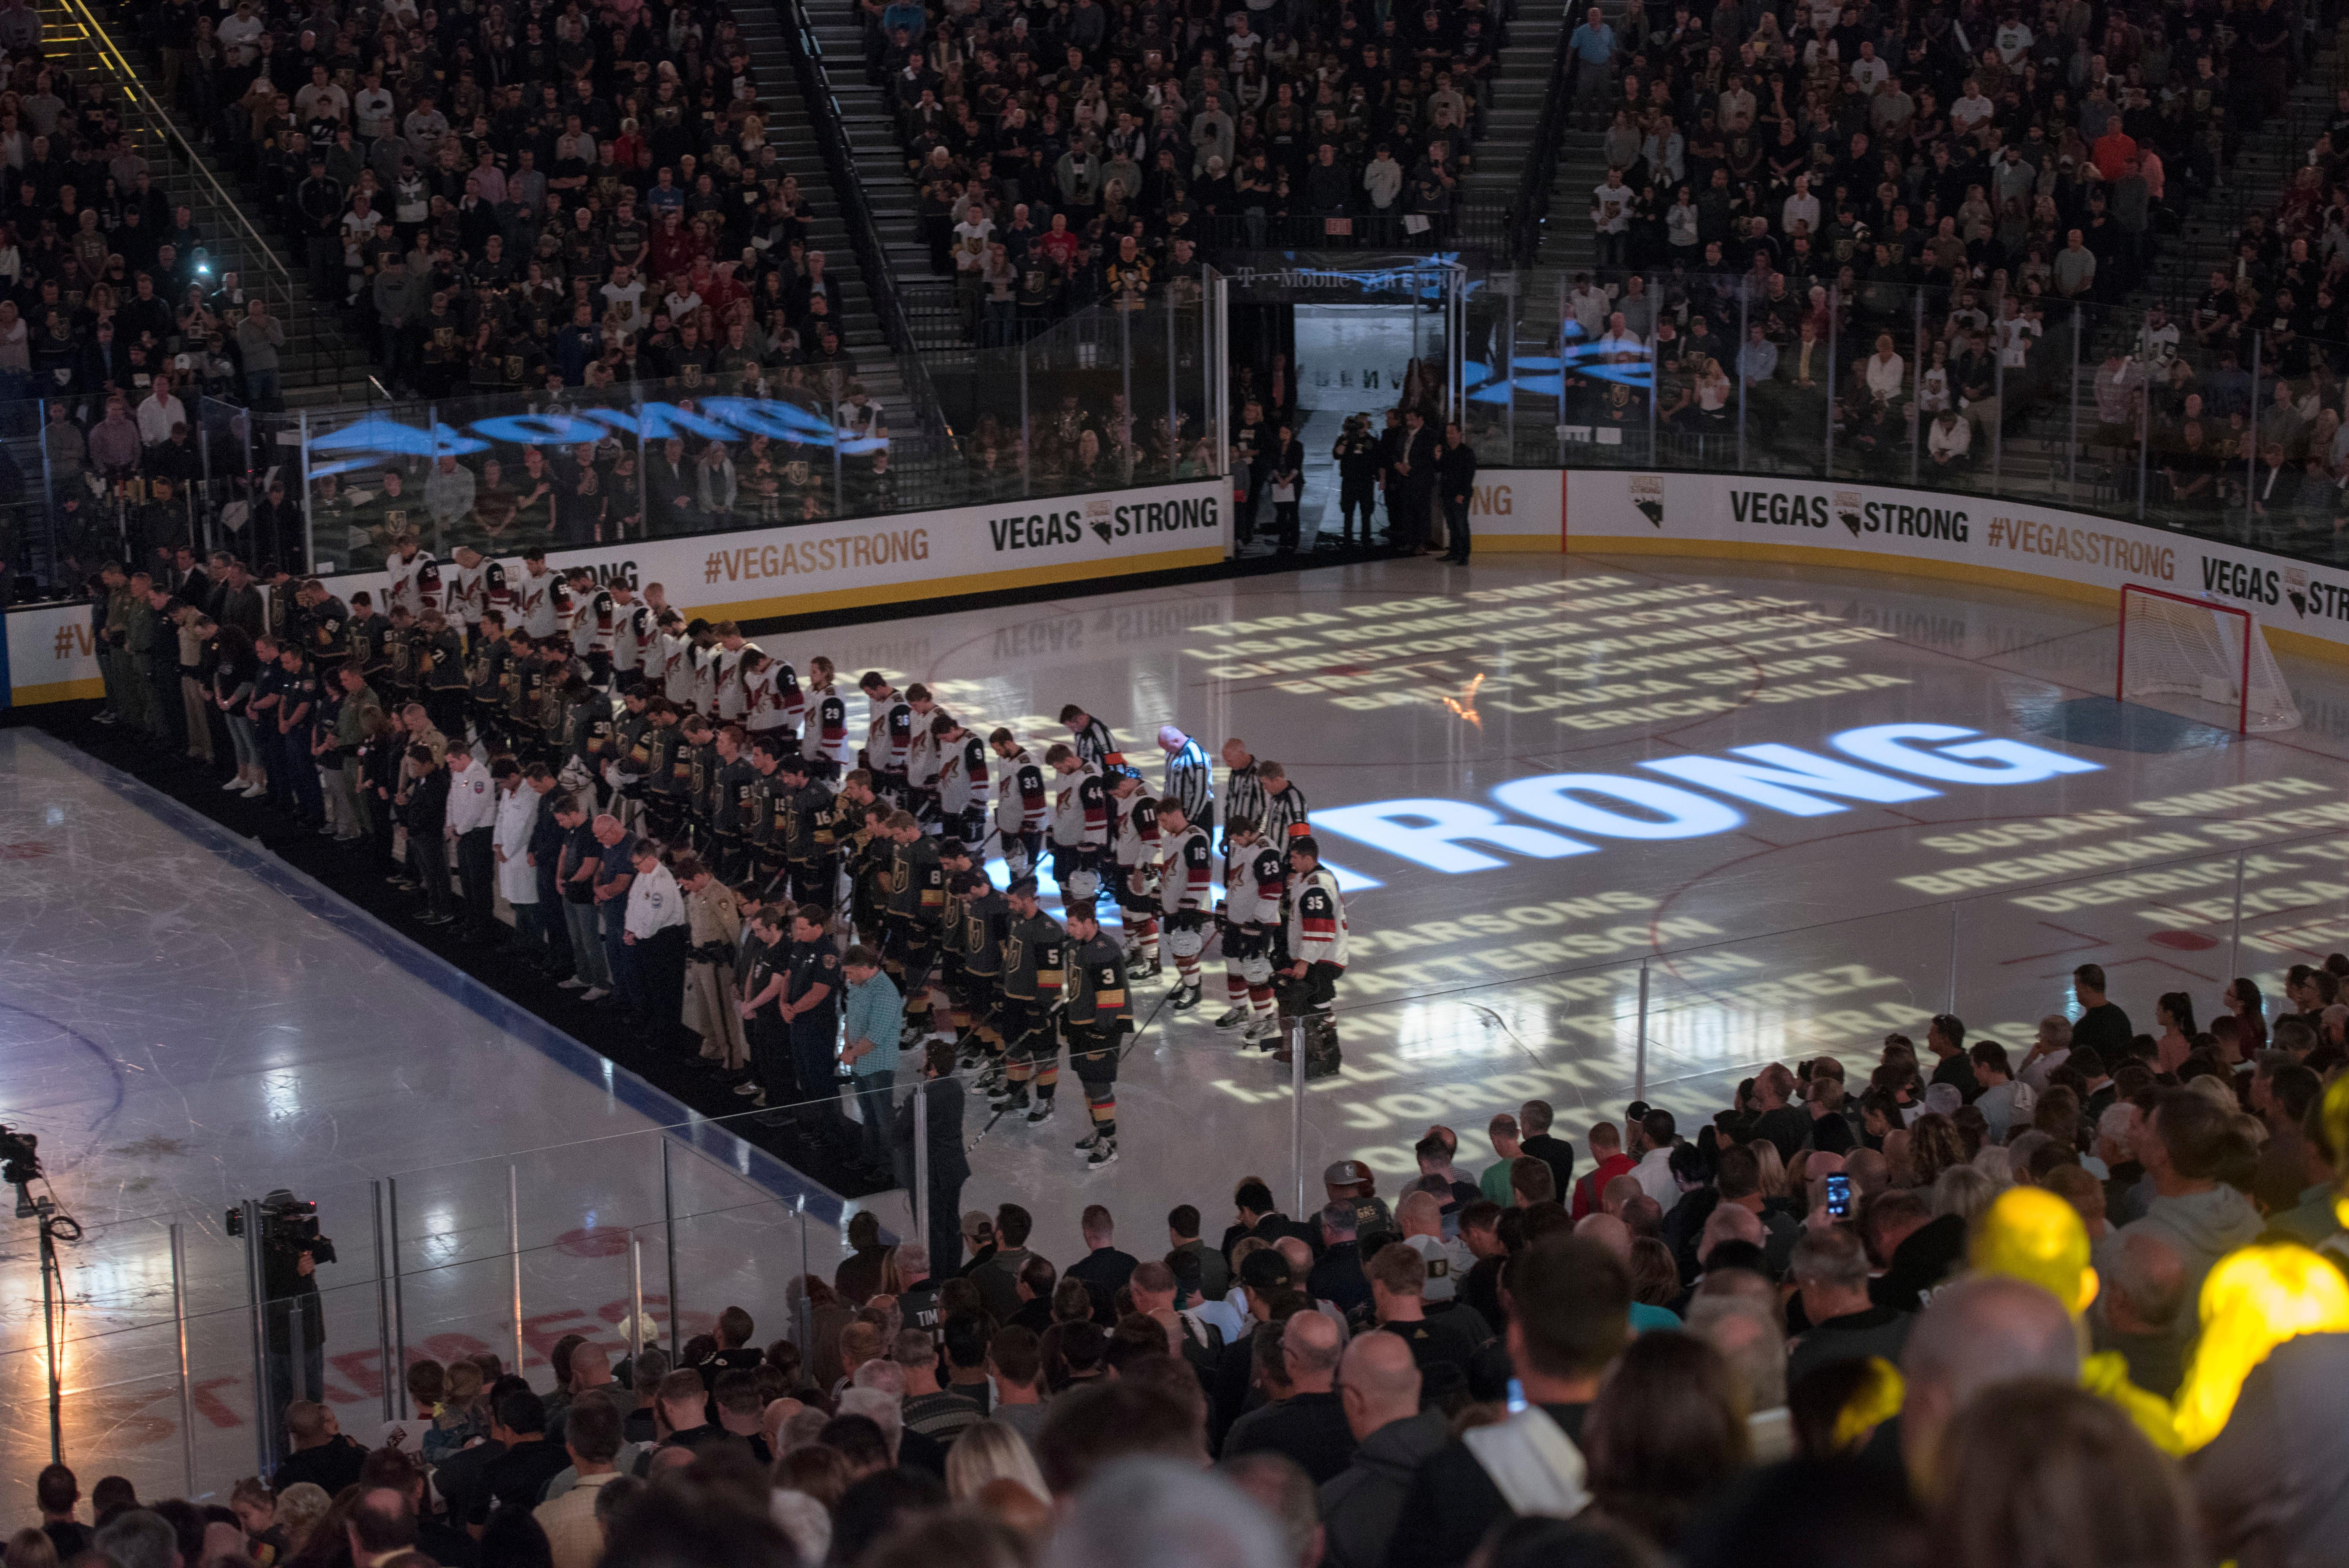 First responders and medical personnel involved in the October 1st tragedy are backed by the Vegas Golden Knights and Arizona Coyotes for 58 seconds of silence before the Knights home opener Tuesday, Oct. 10, 2017, at the T-Mobile Arena. The Knights won 5-2 to extend their winning streak to 3-0. CREDIT: Sam Morris/Las Vegas News Bureau